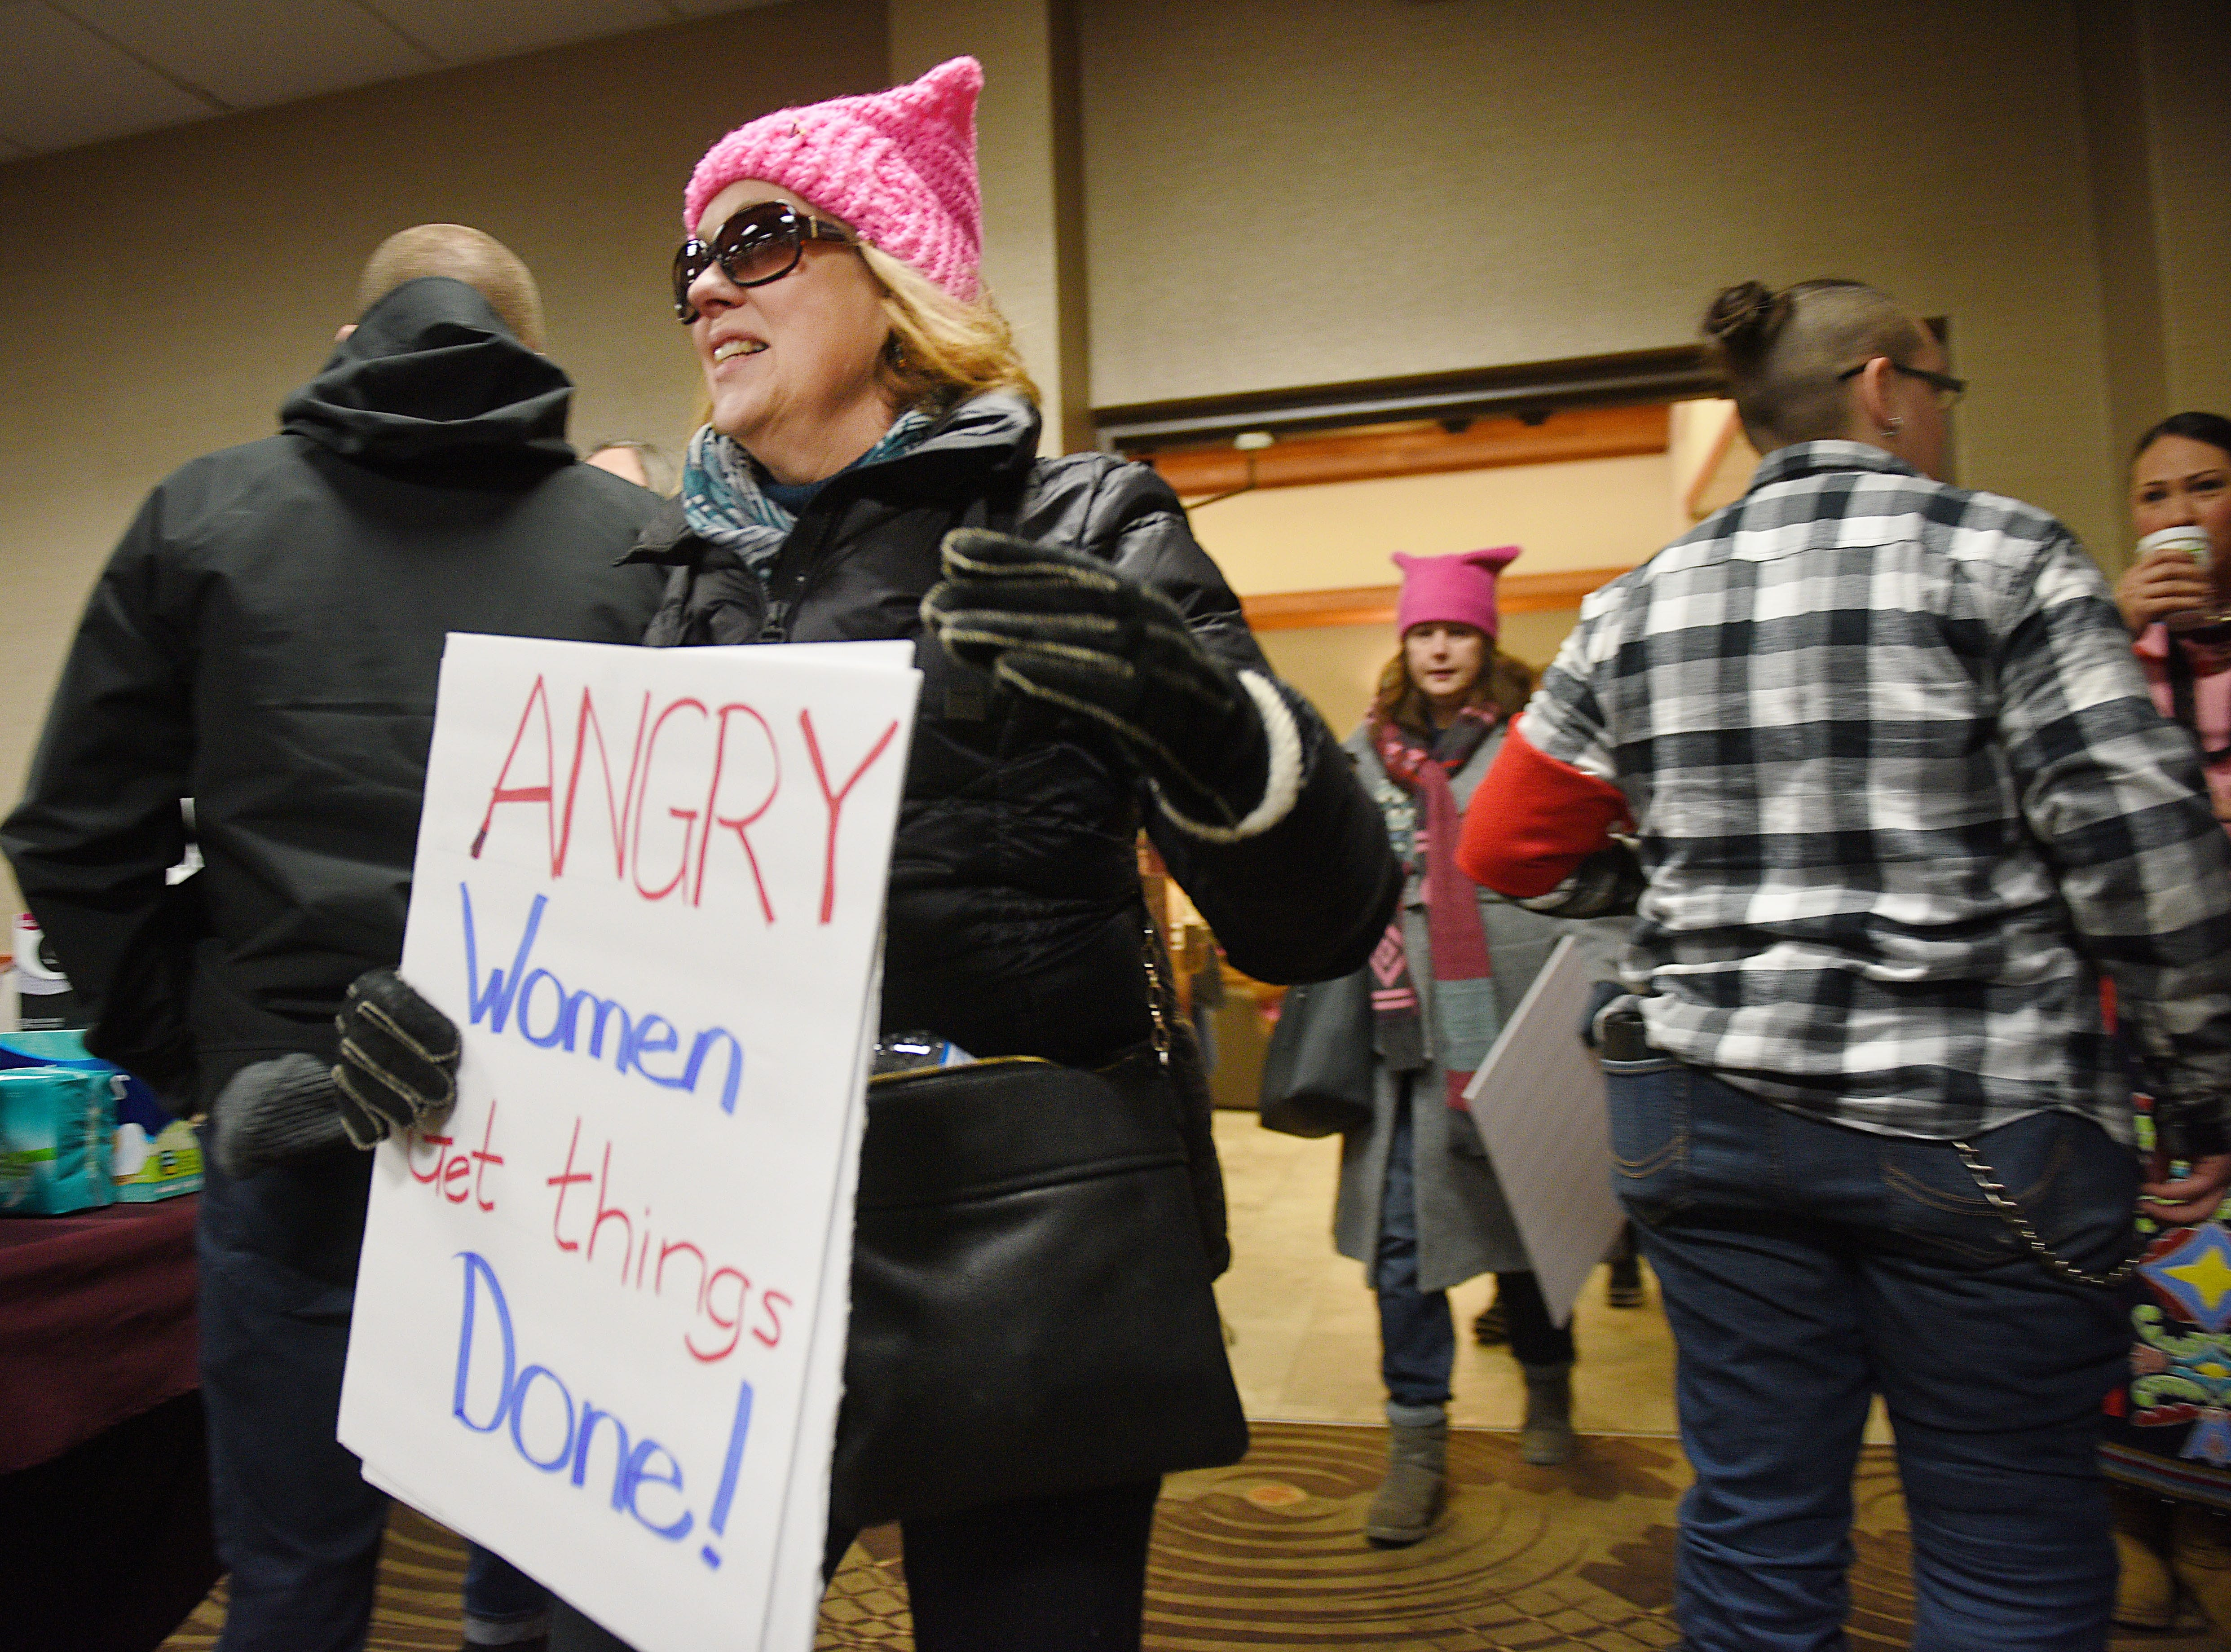 """Sheila Wood walks into the Falls East ballroom with a sign that reads, """"angry women get things done"""" during the Women's March Saturday, Jan. 19, at the Downtown Sioux Falls Holiday Inn-City Centre in Sioux Falls."""